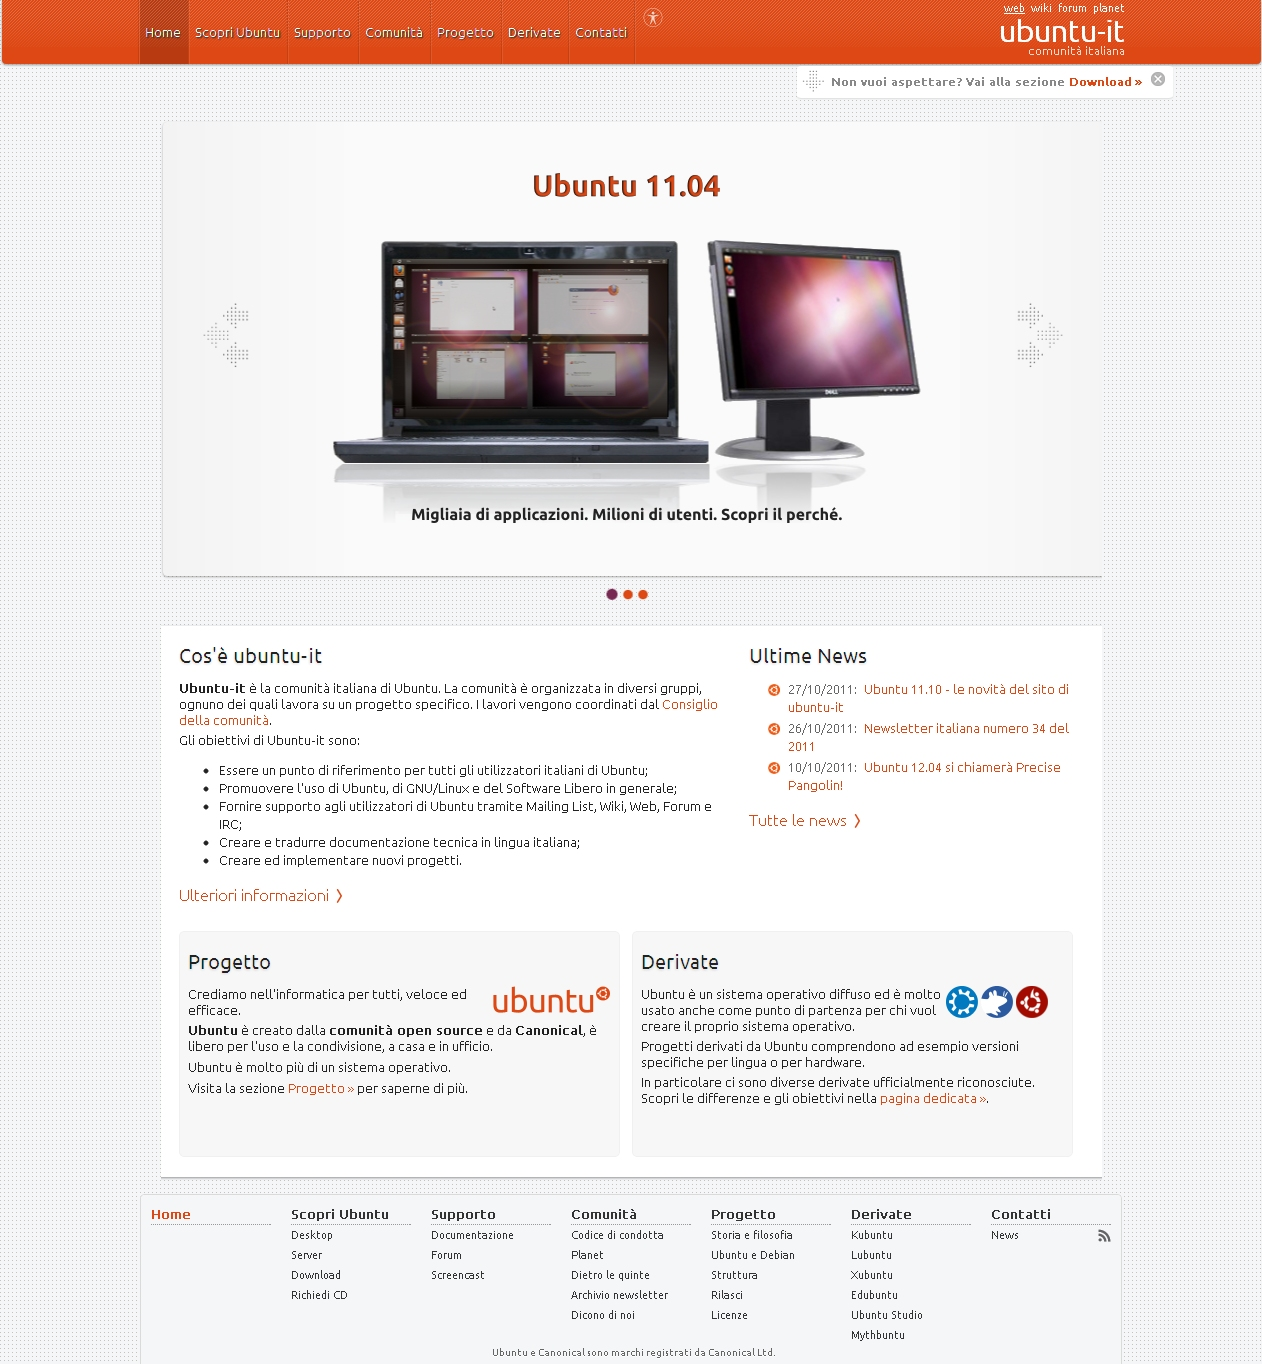 Ubuntu-it home page